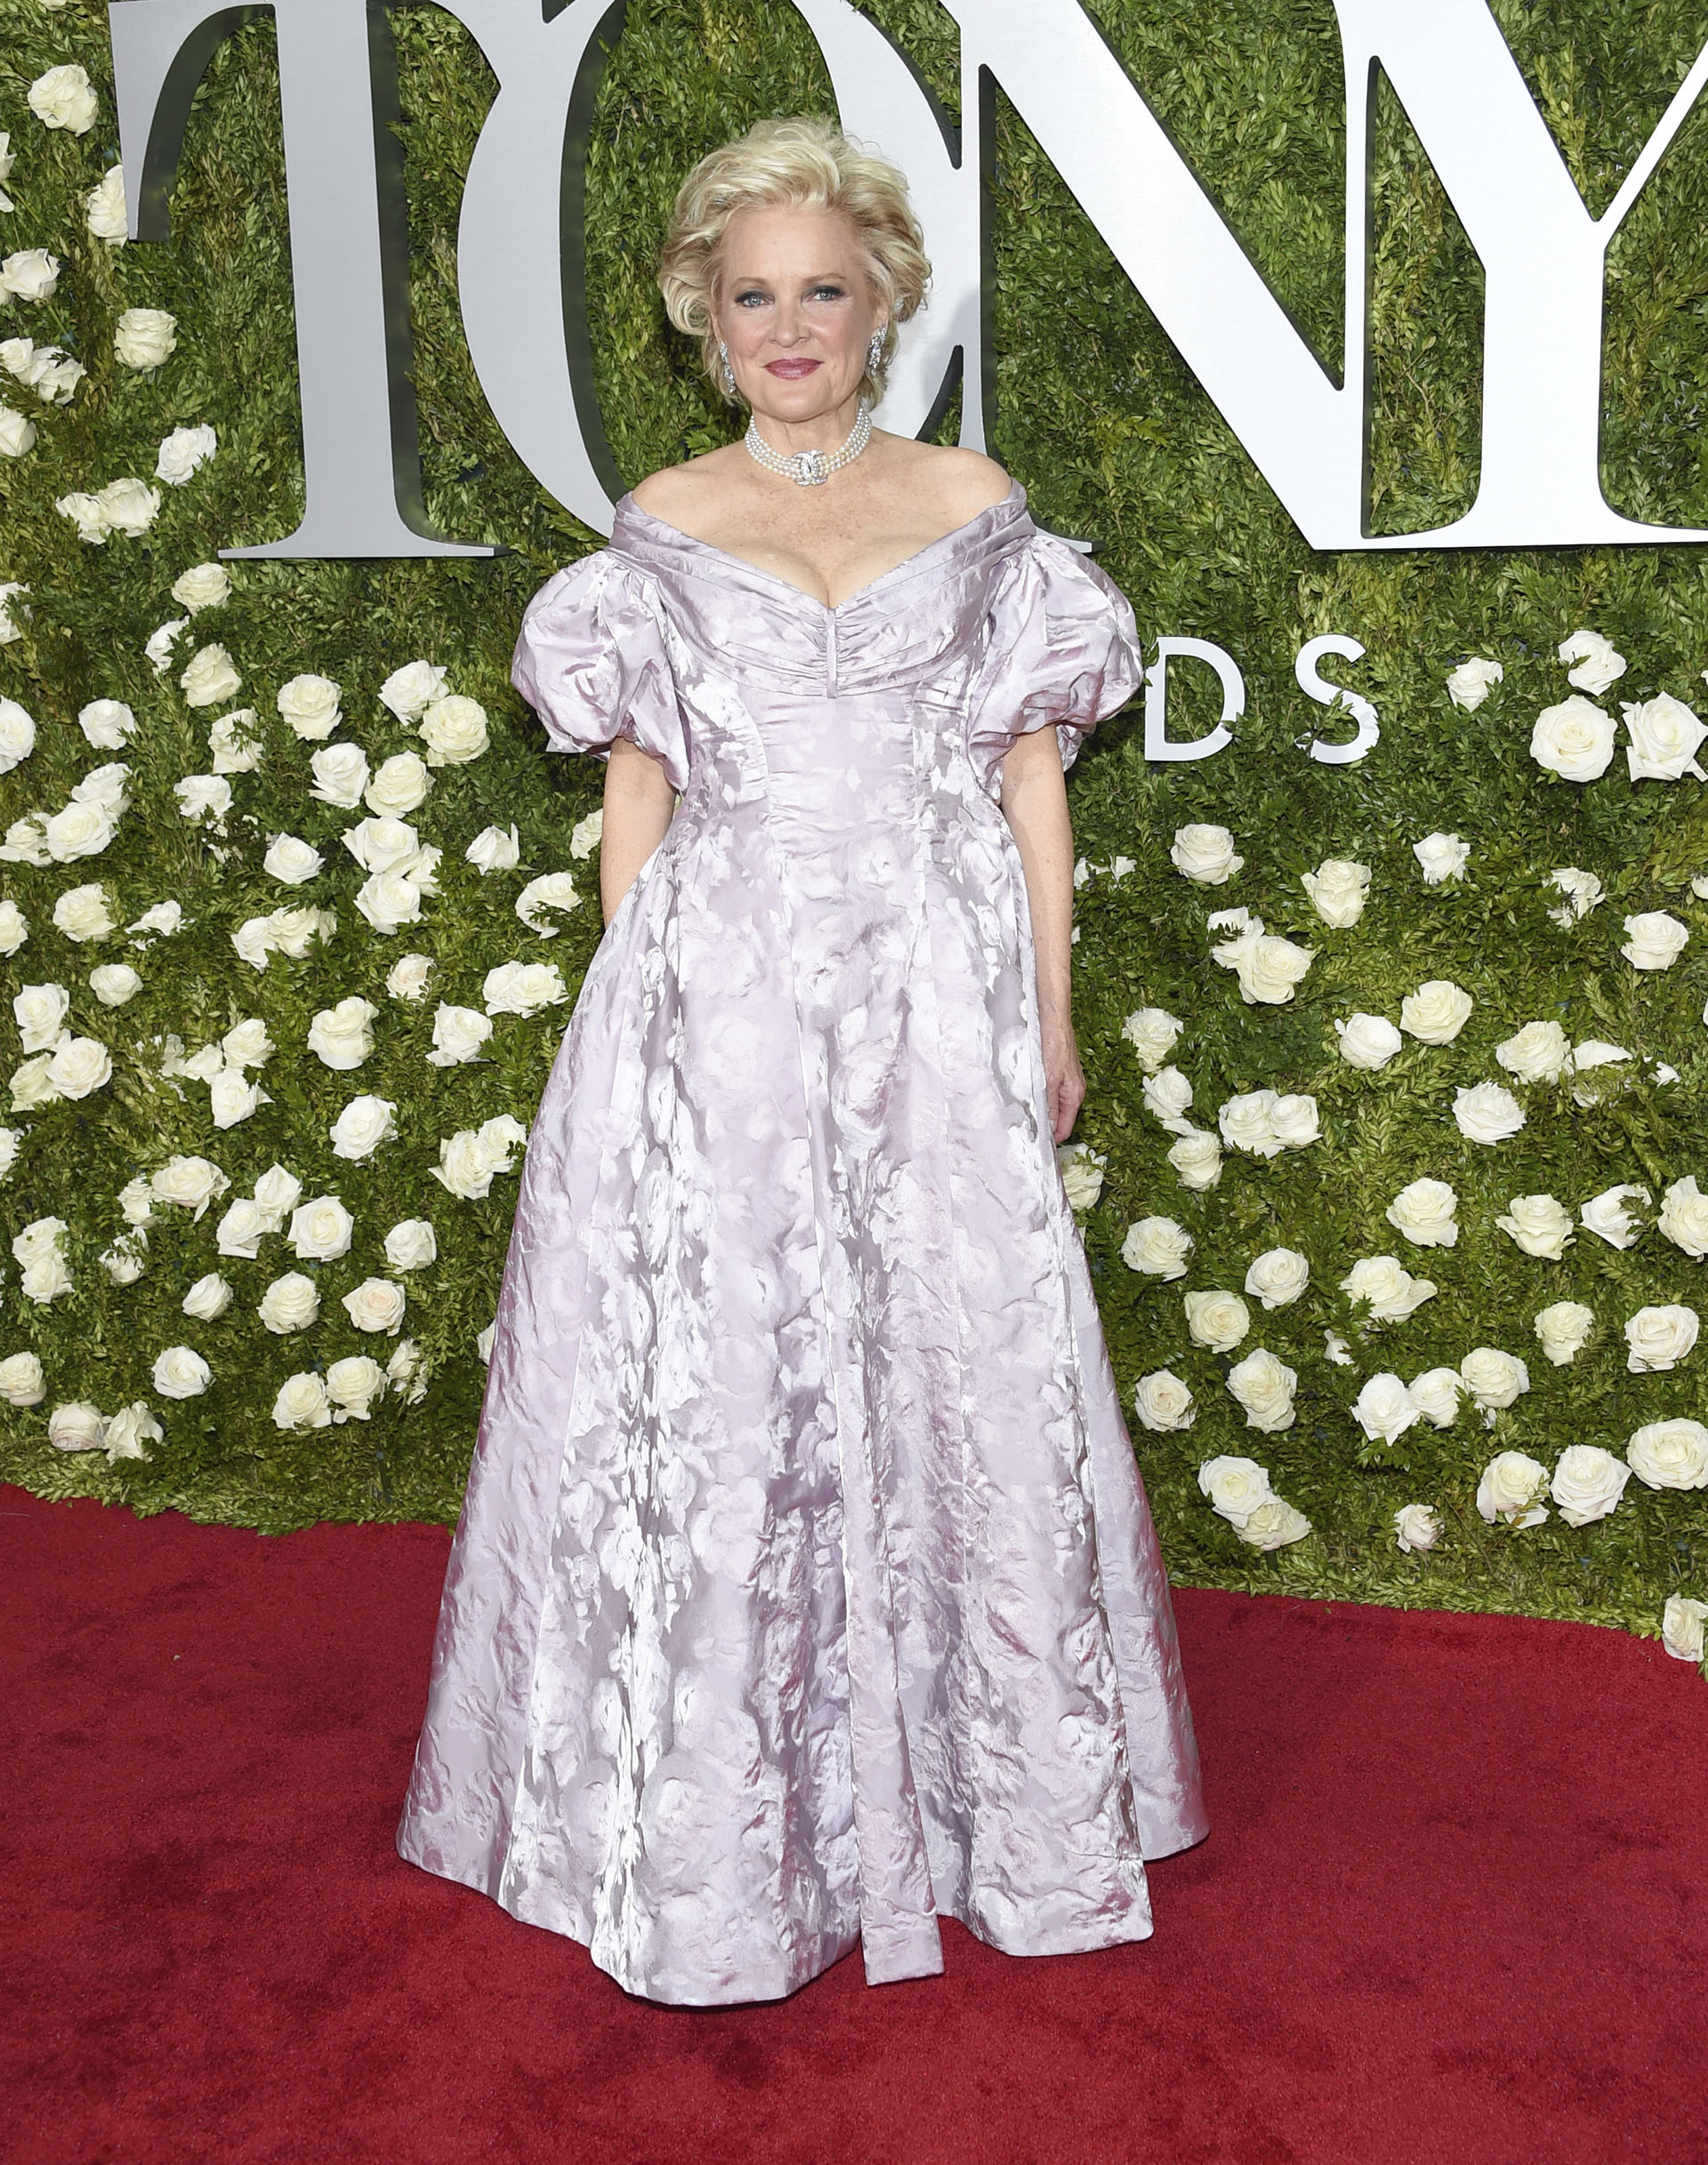 Christine Ebersole, nominada como mejor actriz en un musical para su papel en War Paint, lució un pomposo diseño de William Ivey Long